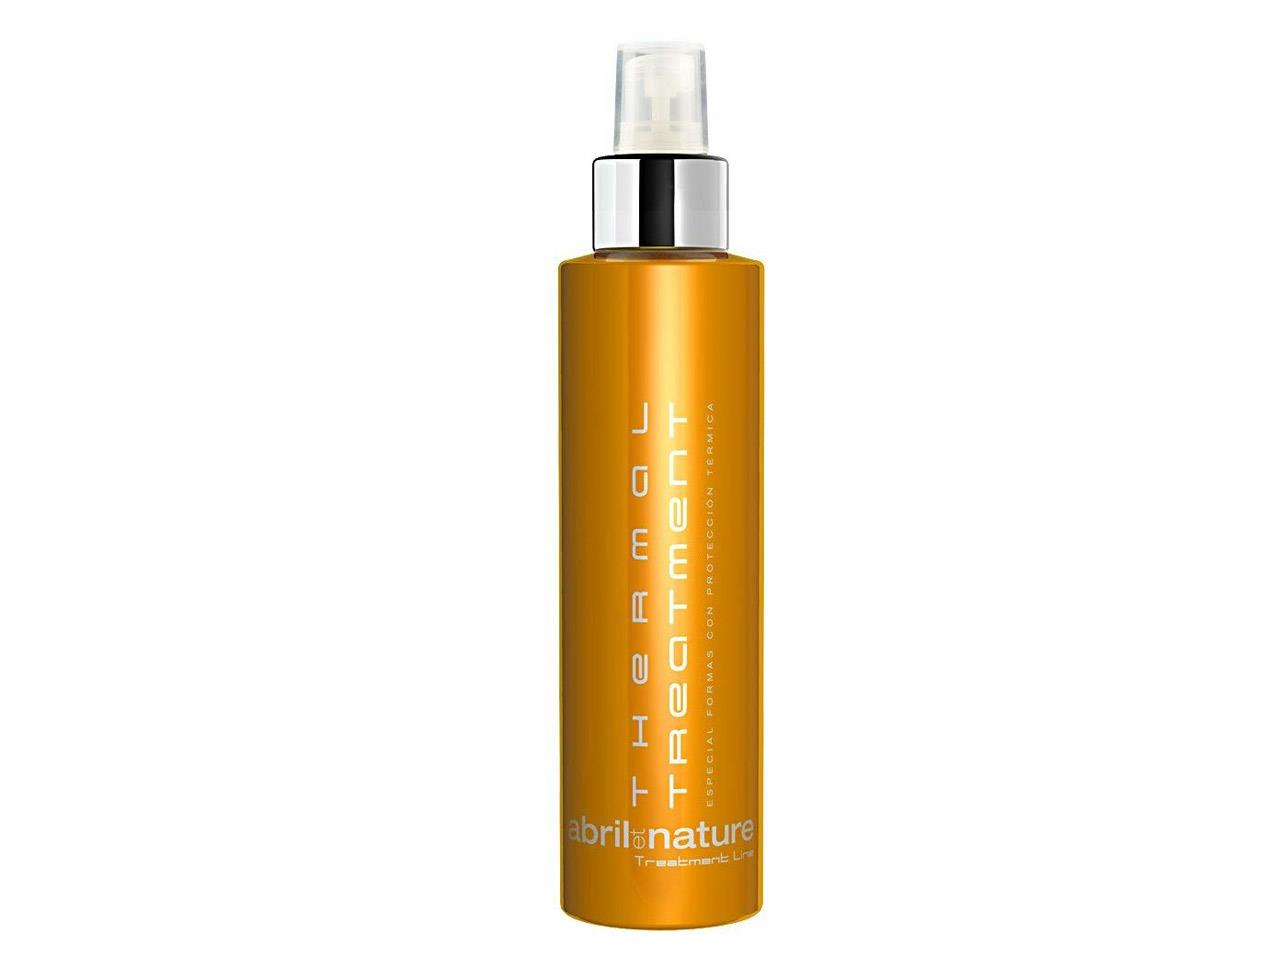 protector térmico calor plancha secador pelo Thermal Treatment de Abril et Nature, 13,23€